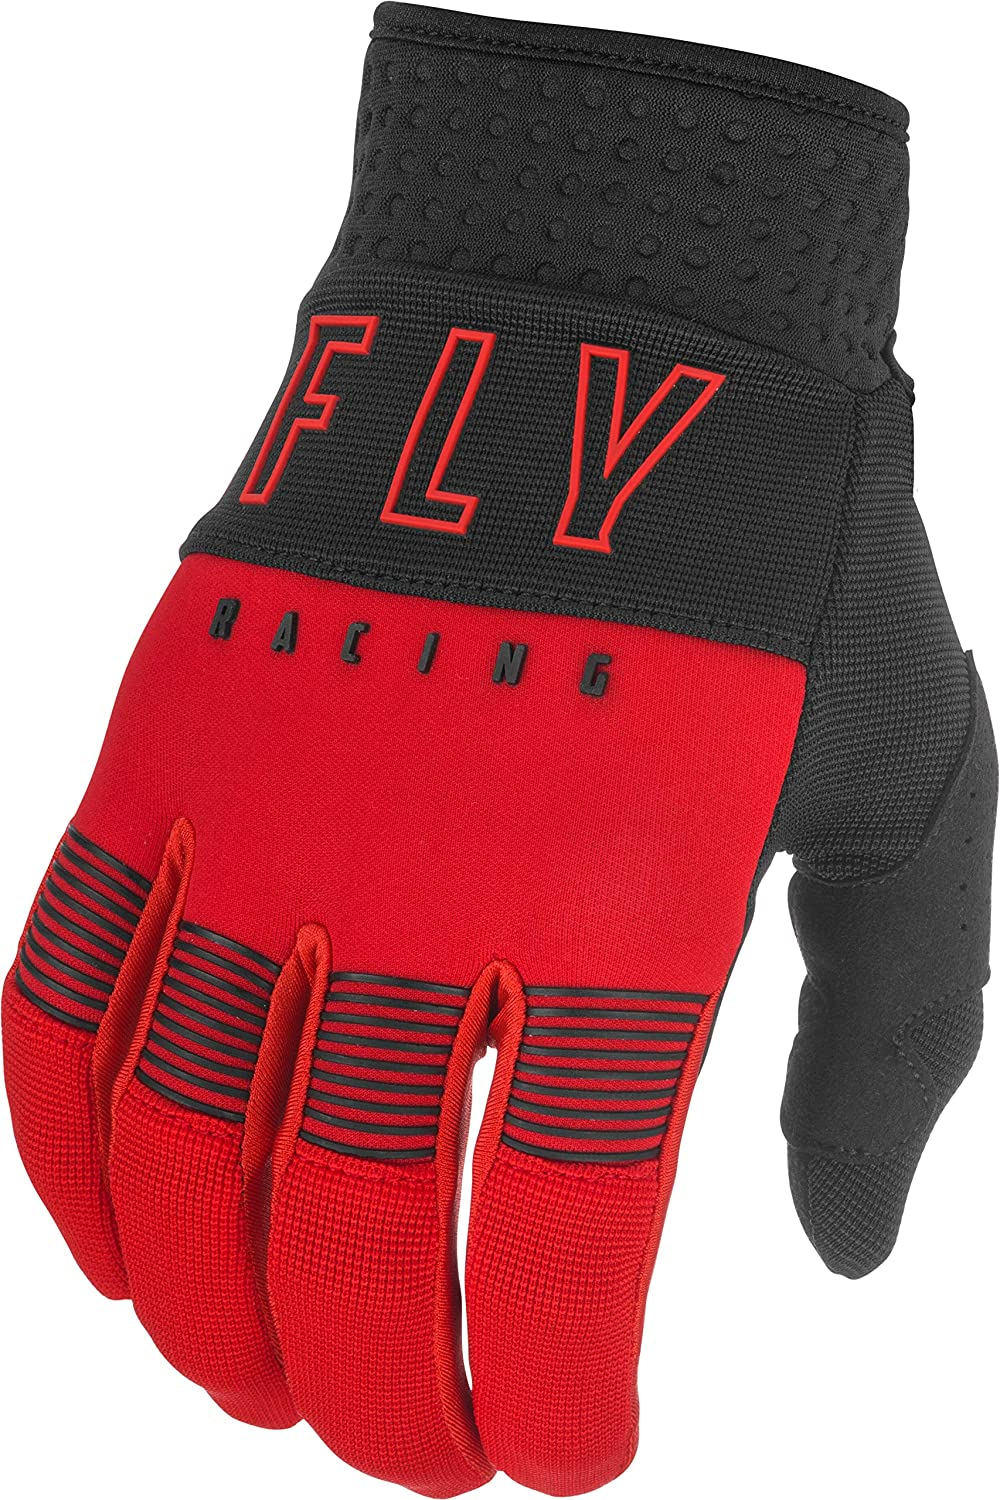 FLY Racing Adult F-16 Gloves Padded Palm Reinforced Thumb Silicone Grip Protective Neoprene Motorcycle Hand Gear